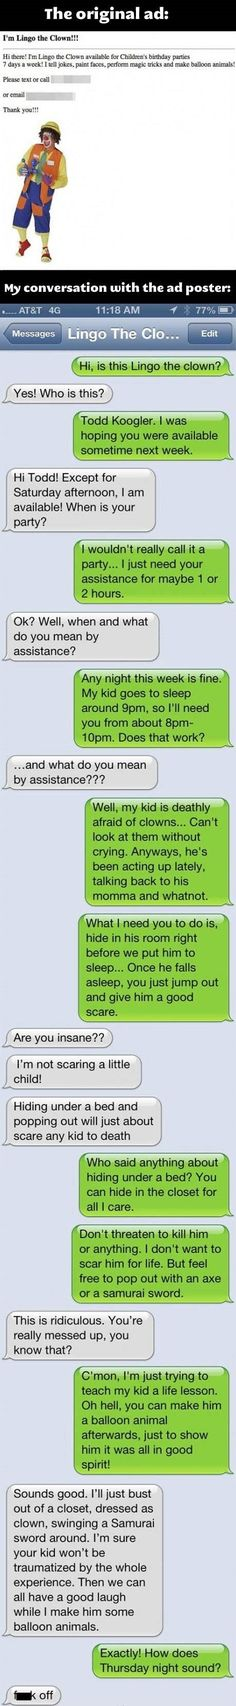 Omg!! I would sooooo want to do this to someone! Hate to say it but if my kid was acting up this will so come to mind!!! Lmao!!!! It would scare the shit out of anyone, you don't have to be scared of clowns hahaha I'm so mean...but that dad is thinking right